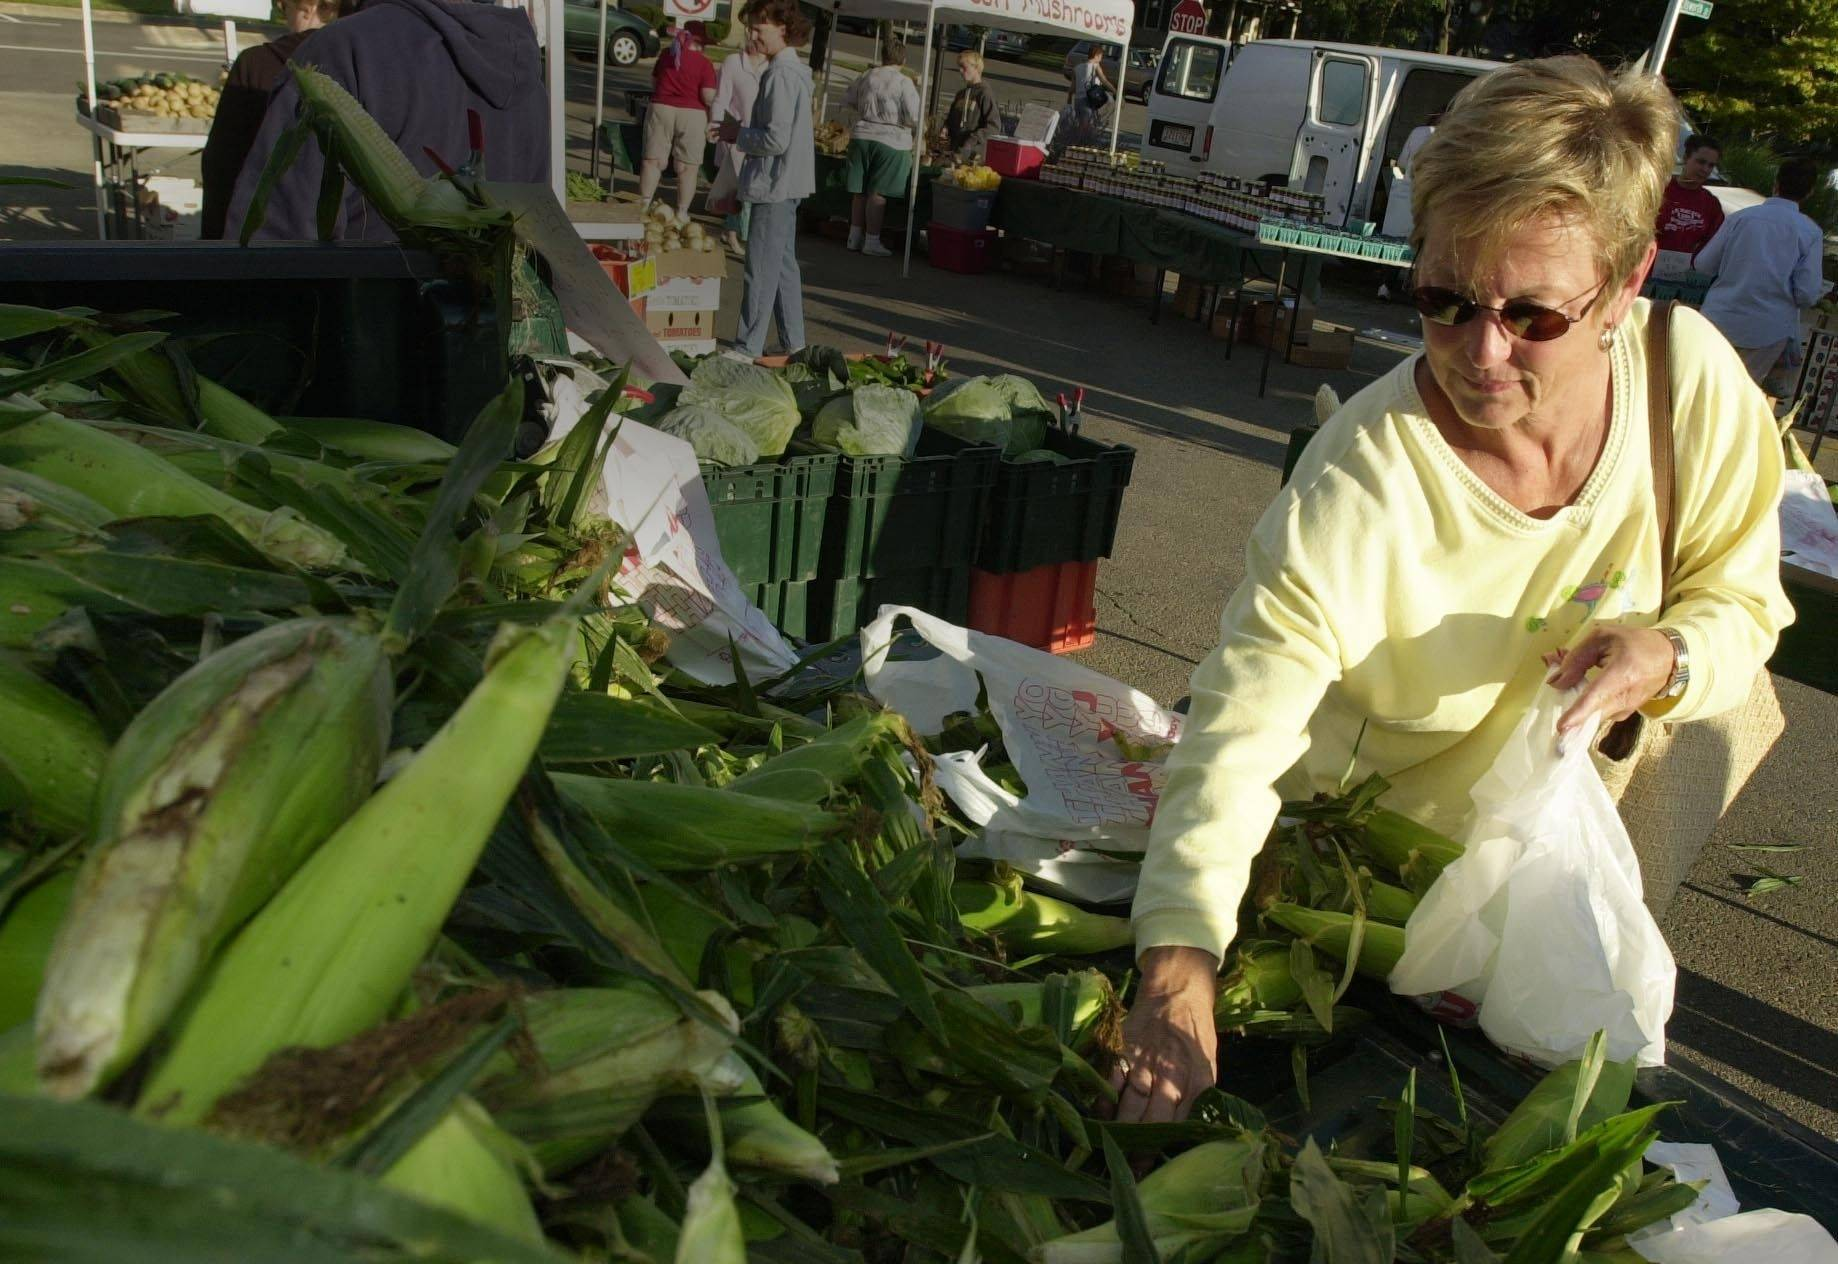 The farmers market at Naperville's Fifth Avenue Station will open for the season in a few weeks and continue from 7 a.m. to noon Saturdays through the last weekend in October.